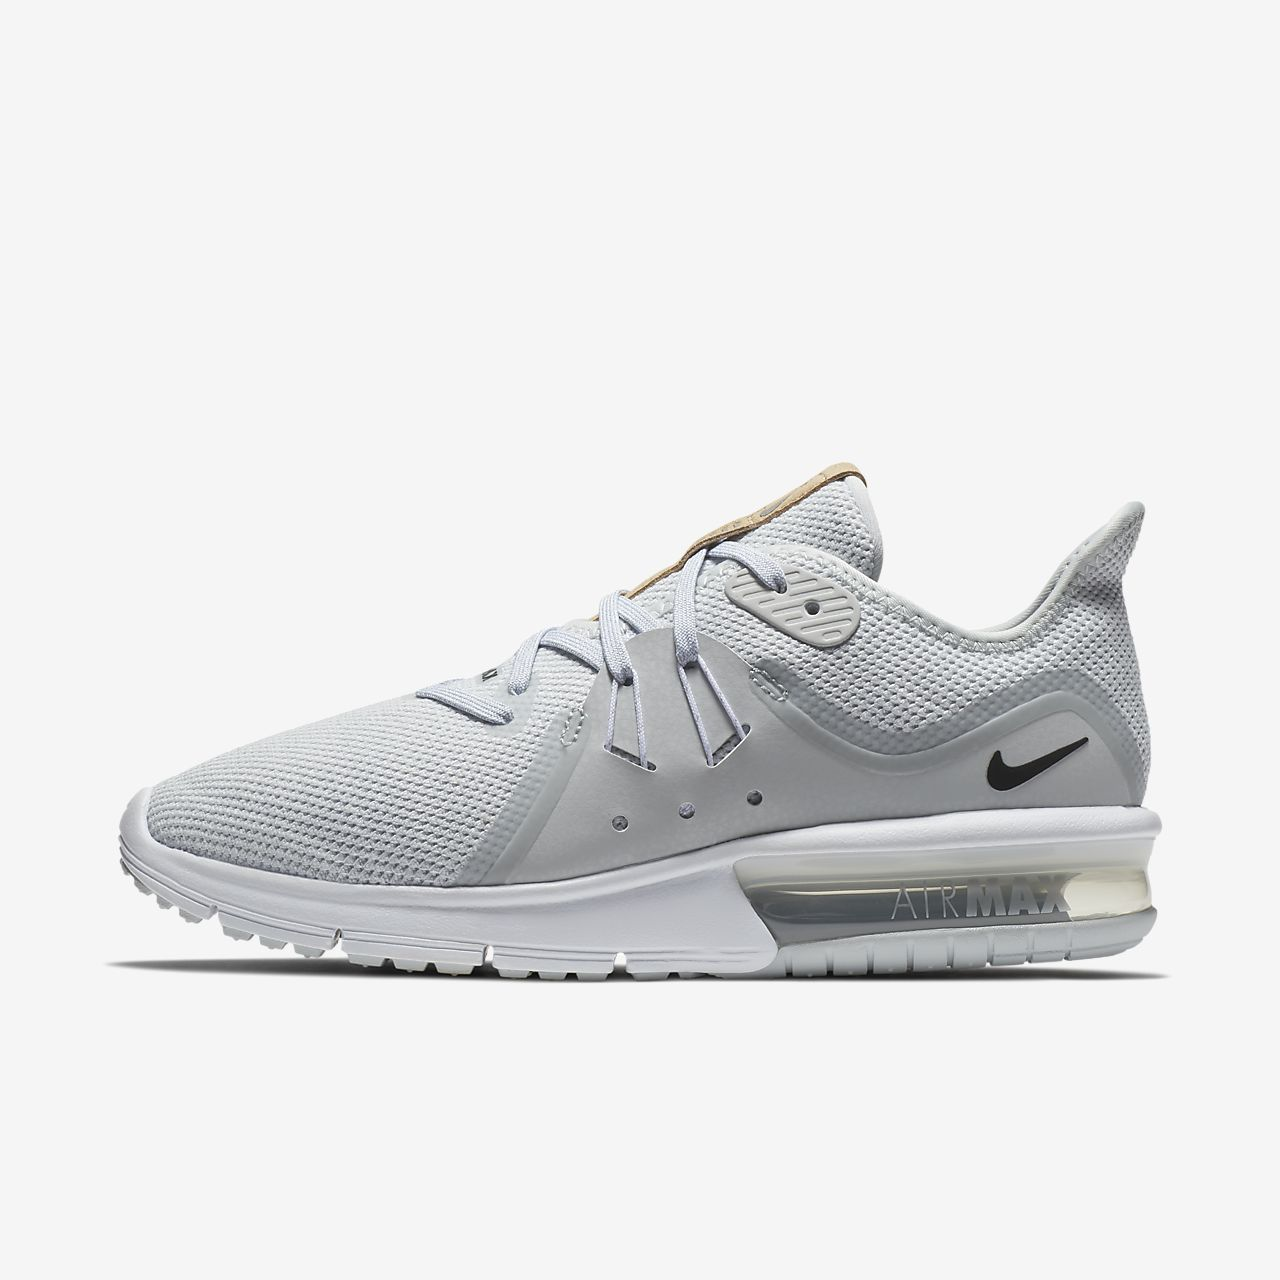 3d3b16aac5007 Nike Air Max Sequent 3 Women s Shoe. Nike.com